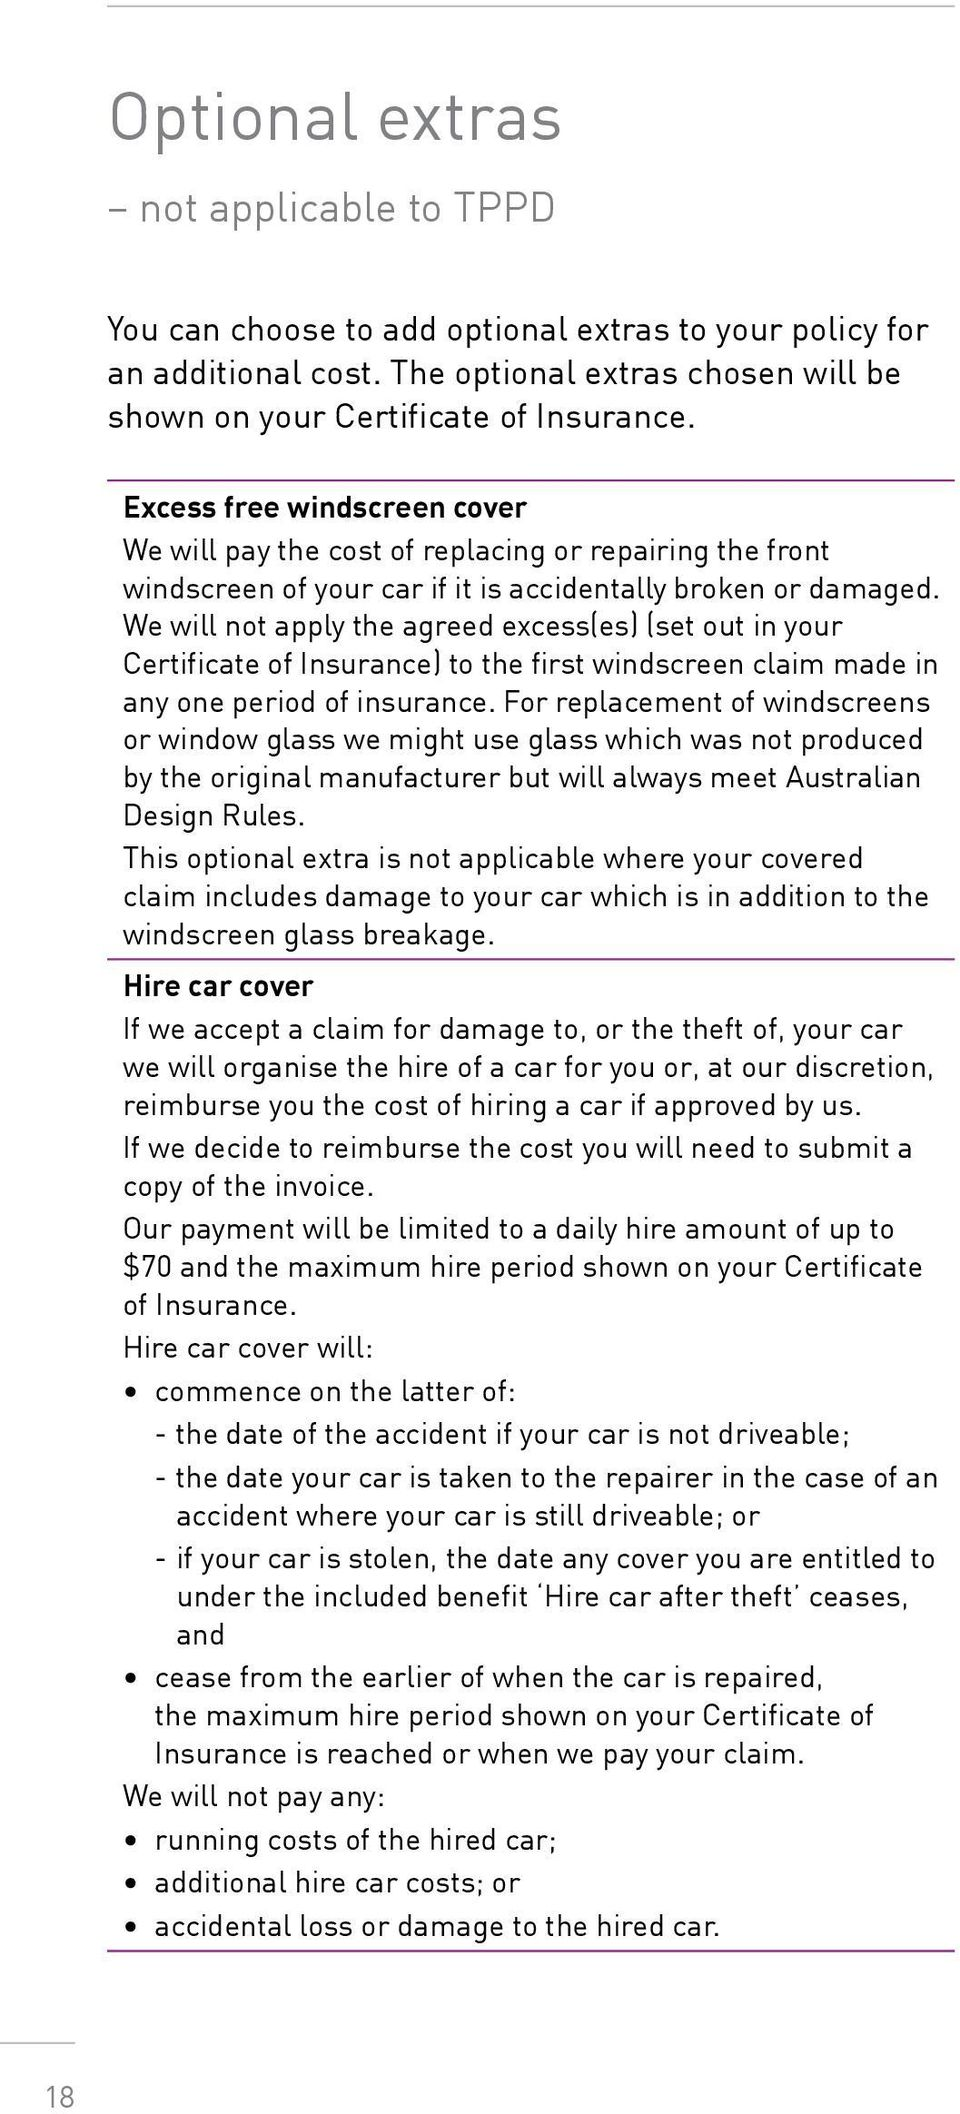 We will not apply the agreed excess(es) (set out in your Certificate of Insurance) to the first windscreen claim made in any one period of insurance.